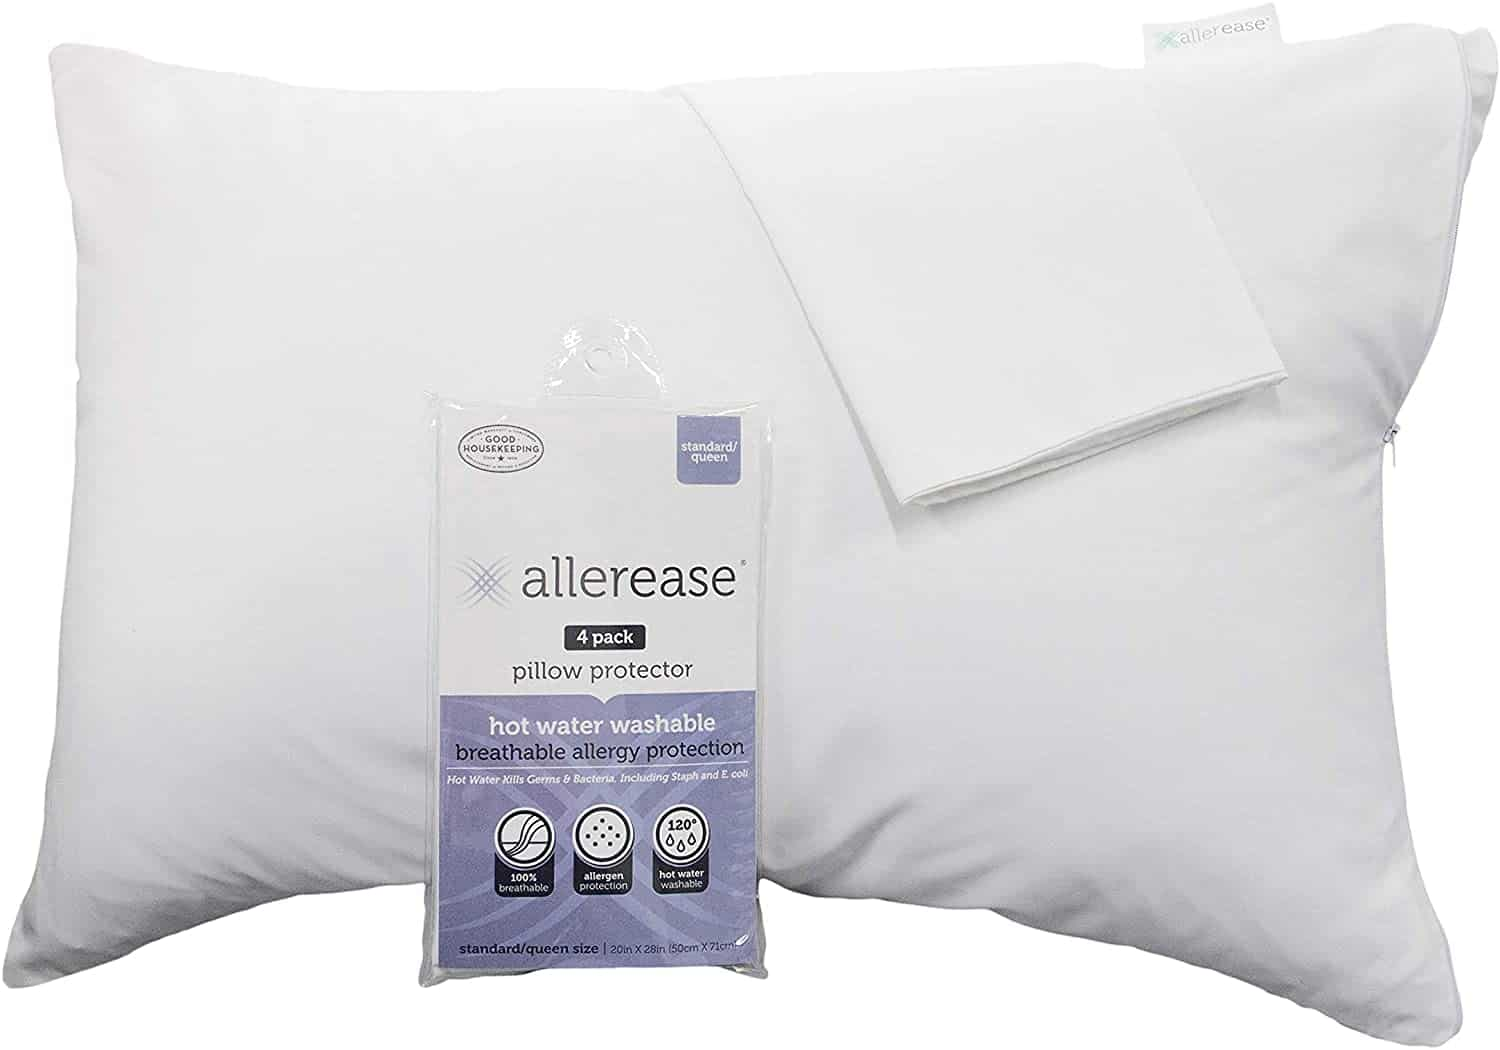 protective hypoallergenic pillow covers